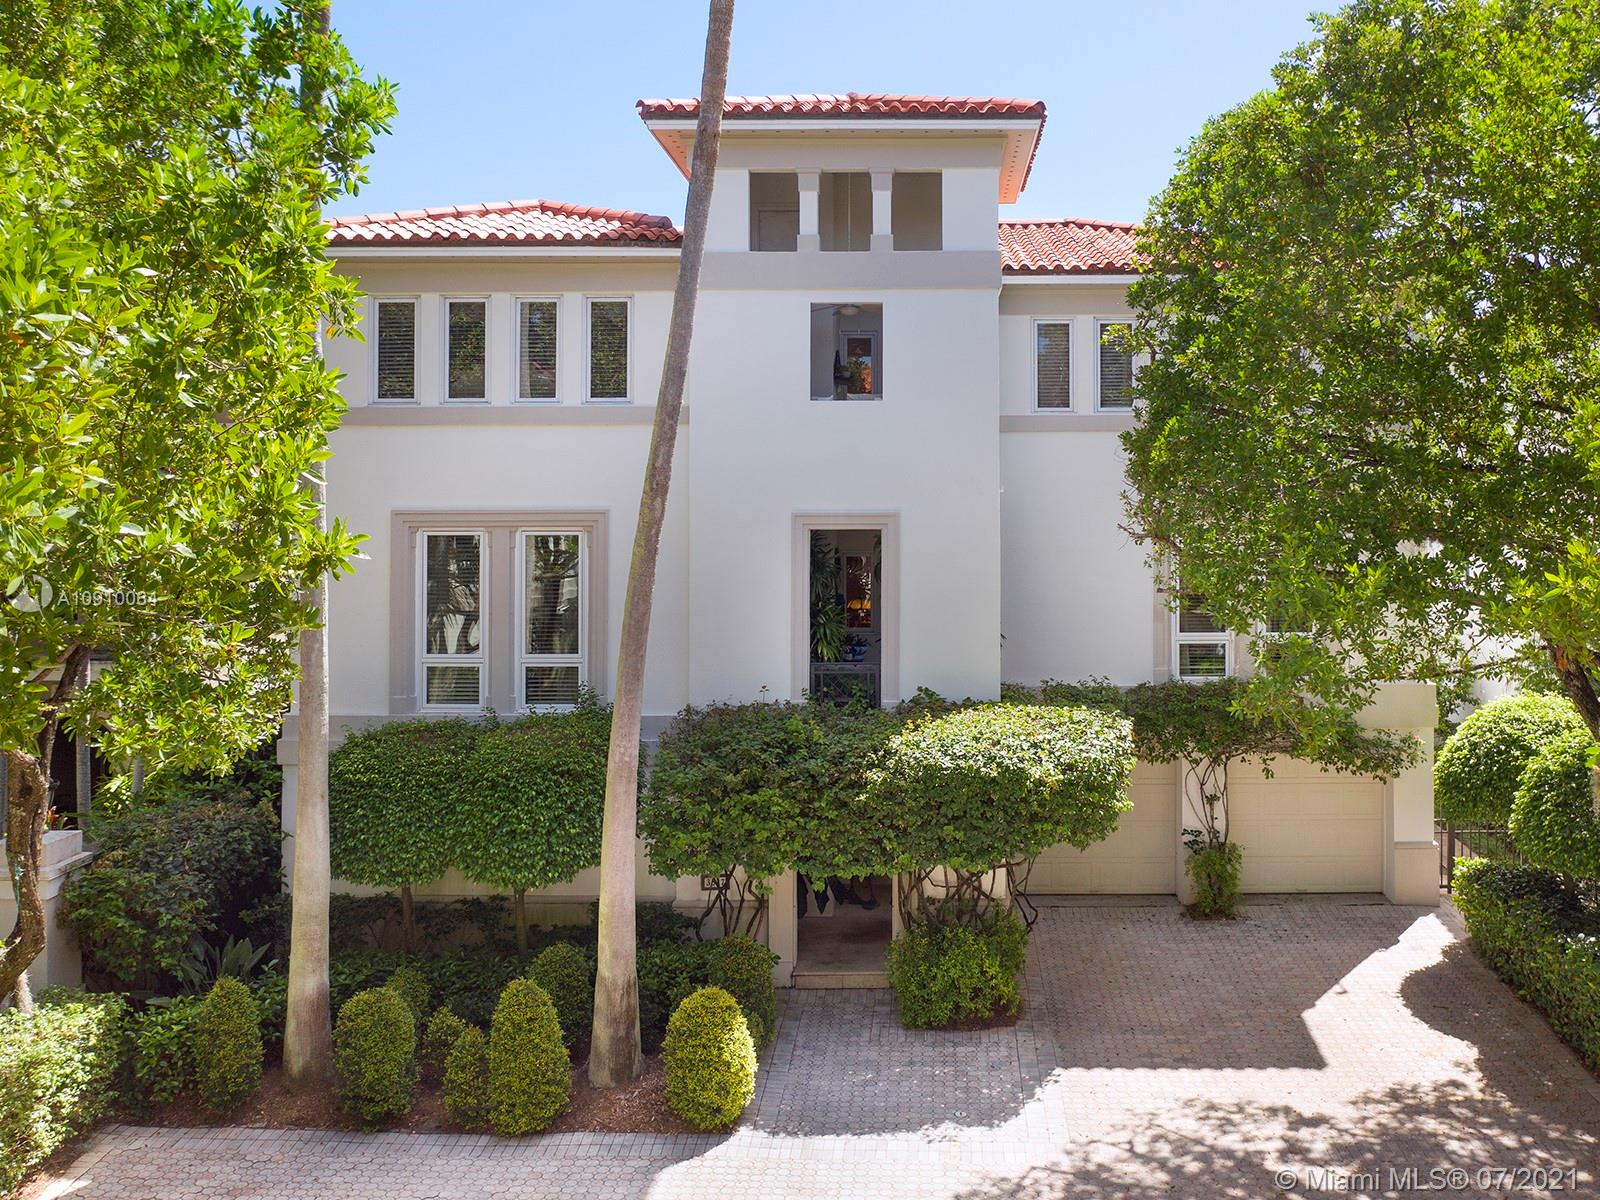 Set in private, gated Bayshore Villas tree-lined enclave of Coconut Grove, this unique NYC-style three-story home features two balconies and a two-car garage. Greeted by a three-story foyer leading to an aesthetic, serpentine happel stone stairway, the ground floor, in addition to maid room and washroom, also holds a movie theater with a 99 in screen with full bathroom overlooking a screened-in pool room and back yard that welcomes sunbathing and outdoor dining. The elevator or stairway lead to the travertine marble and happel stone-lined middle floor where floor-to-ceiling windows light up the elegant, spacious living room and dining room. Adjacent, a cozy library/sitting room connects to the huge Jenn Air/Subzero-equipped  kitchen, half bath and breakfast nook.